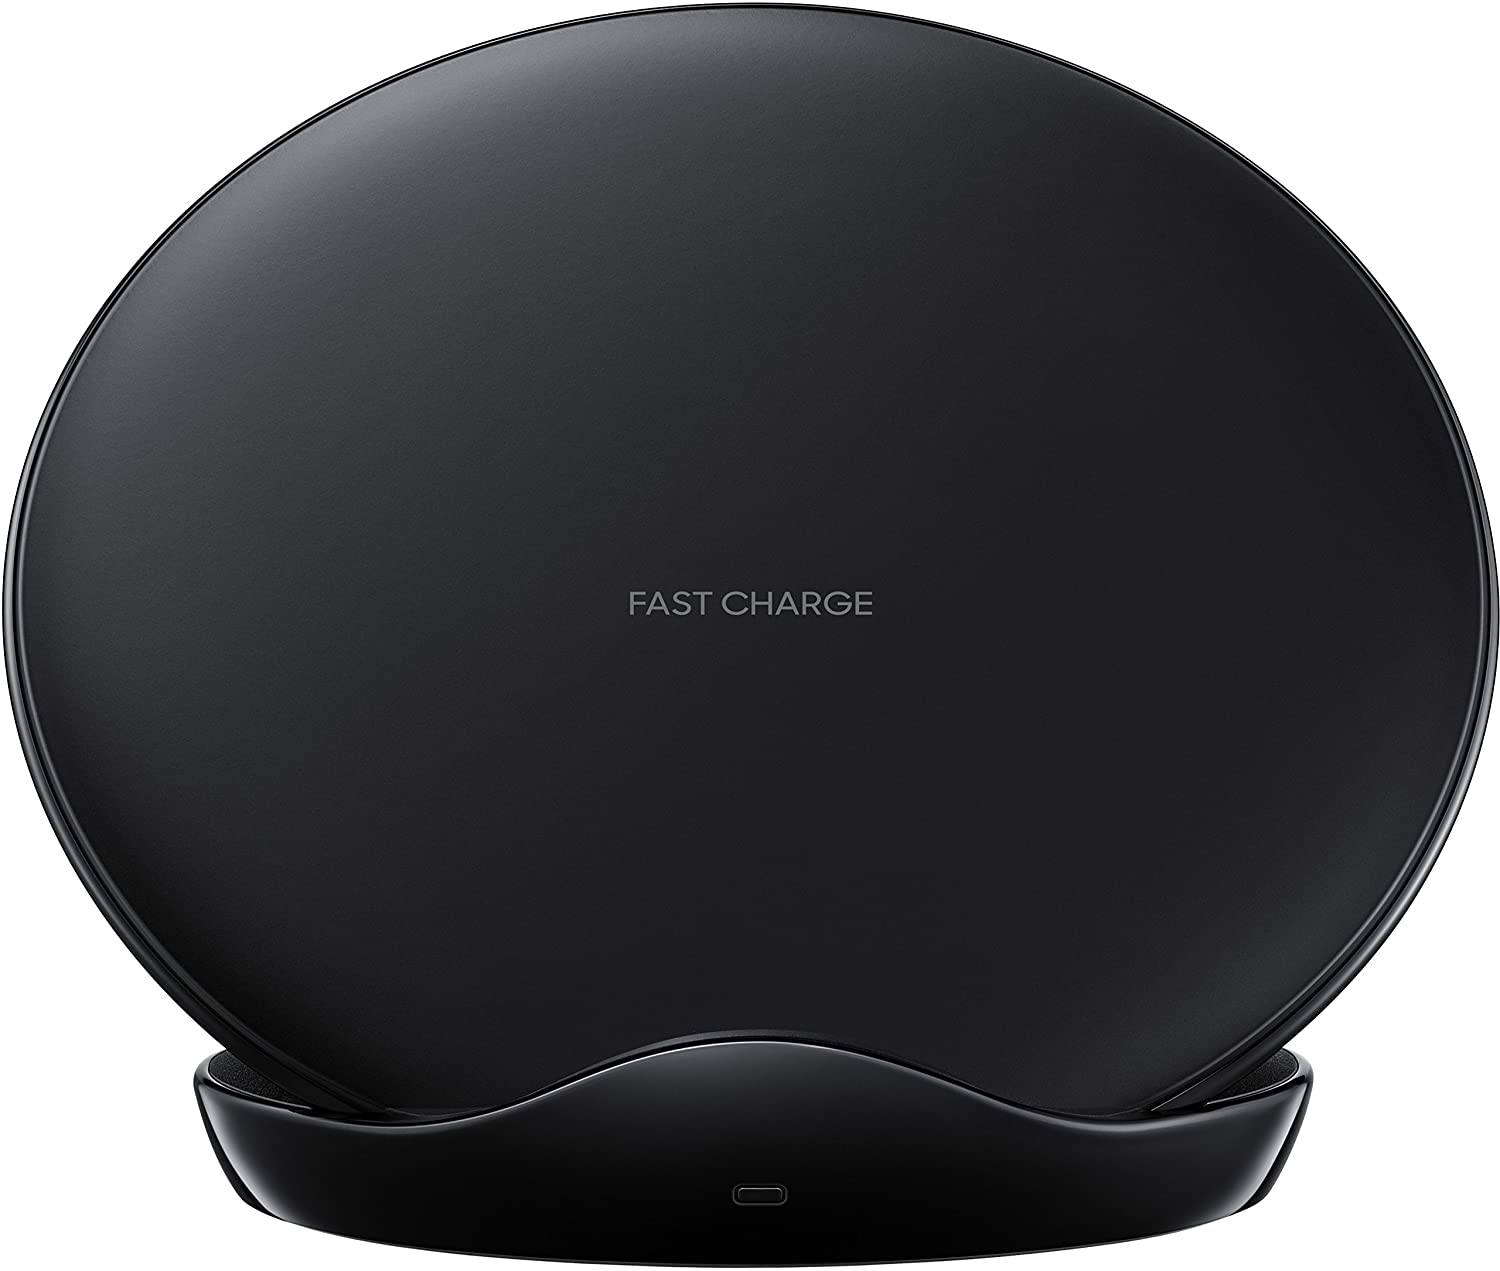 Samsung Galaxy S9/S9+ Wireless charger standing, Black